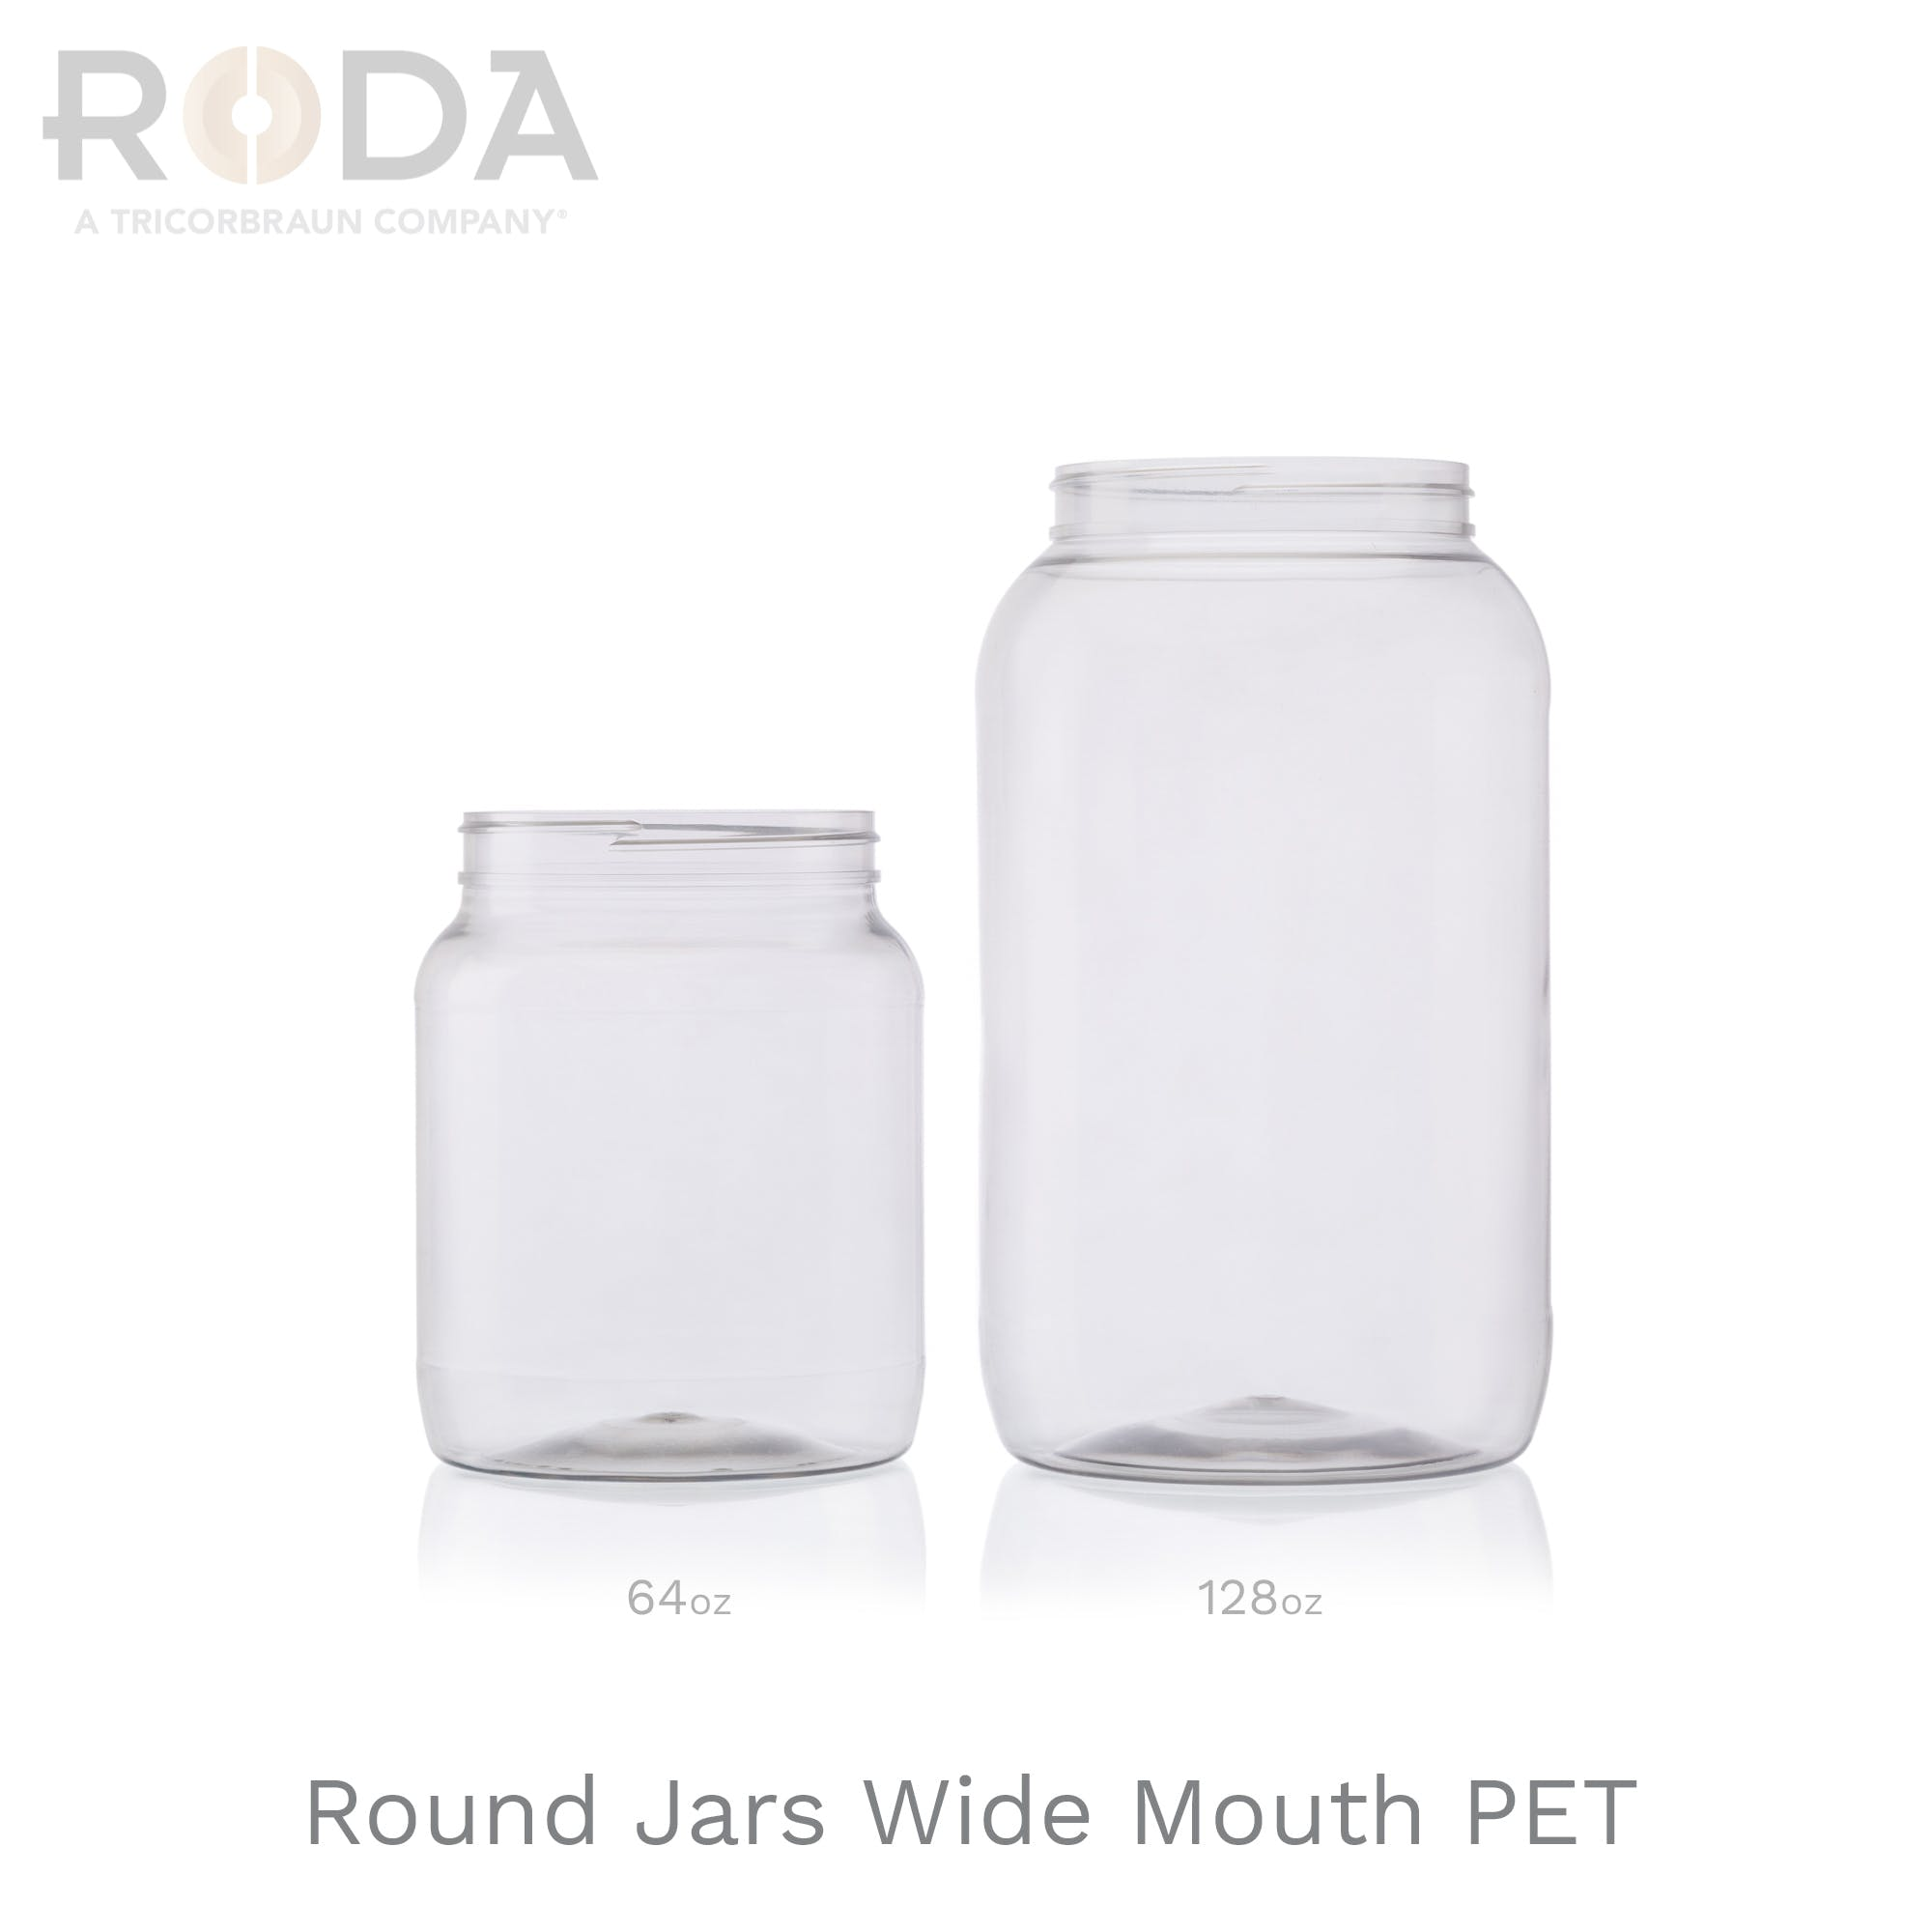 Round Jars Wide Mouth PET